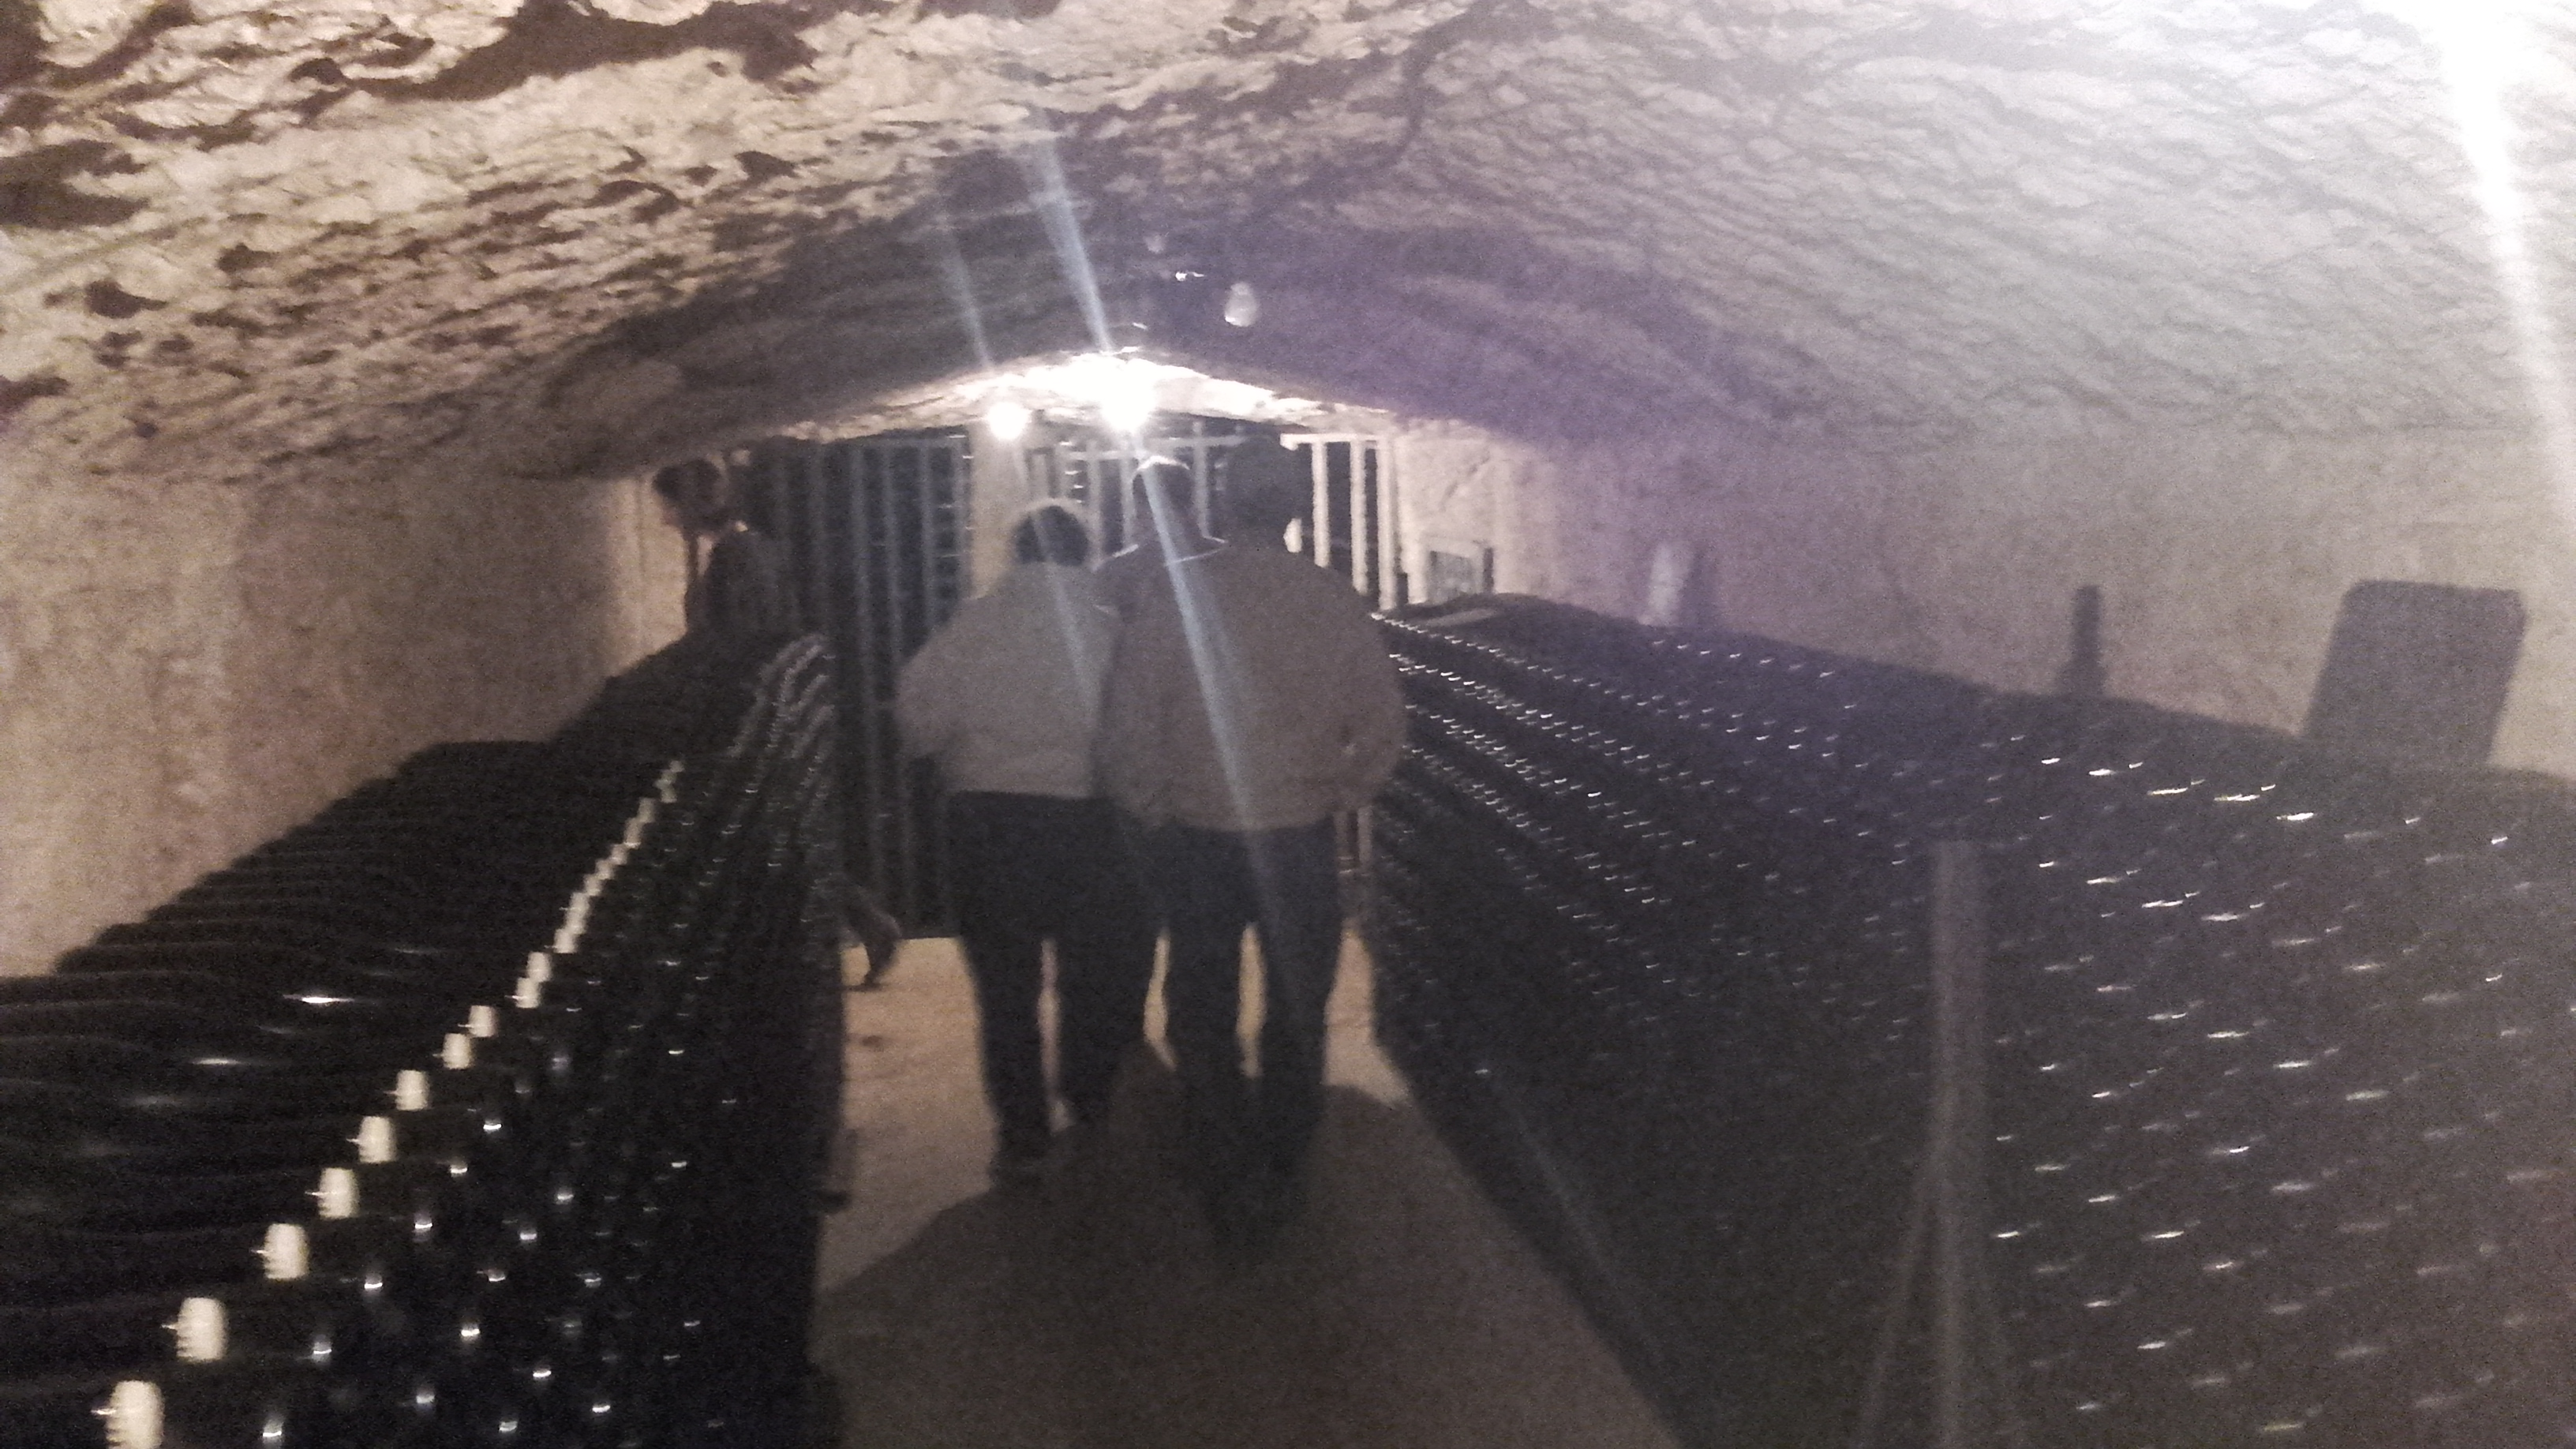 Emerging from a wine cellar